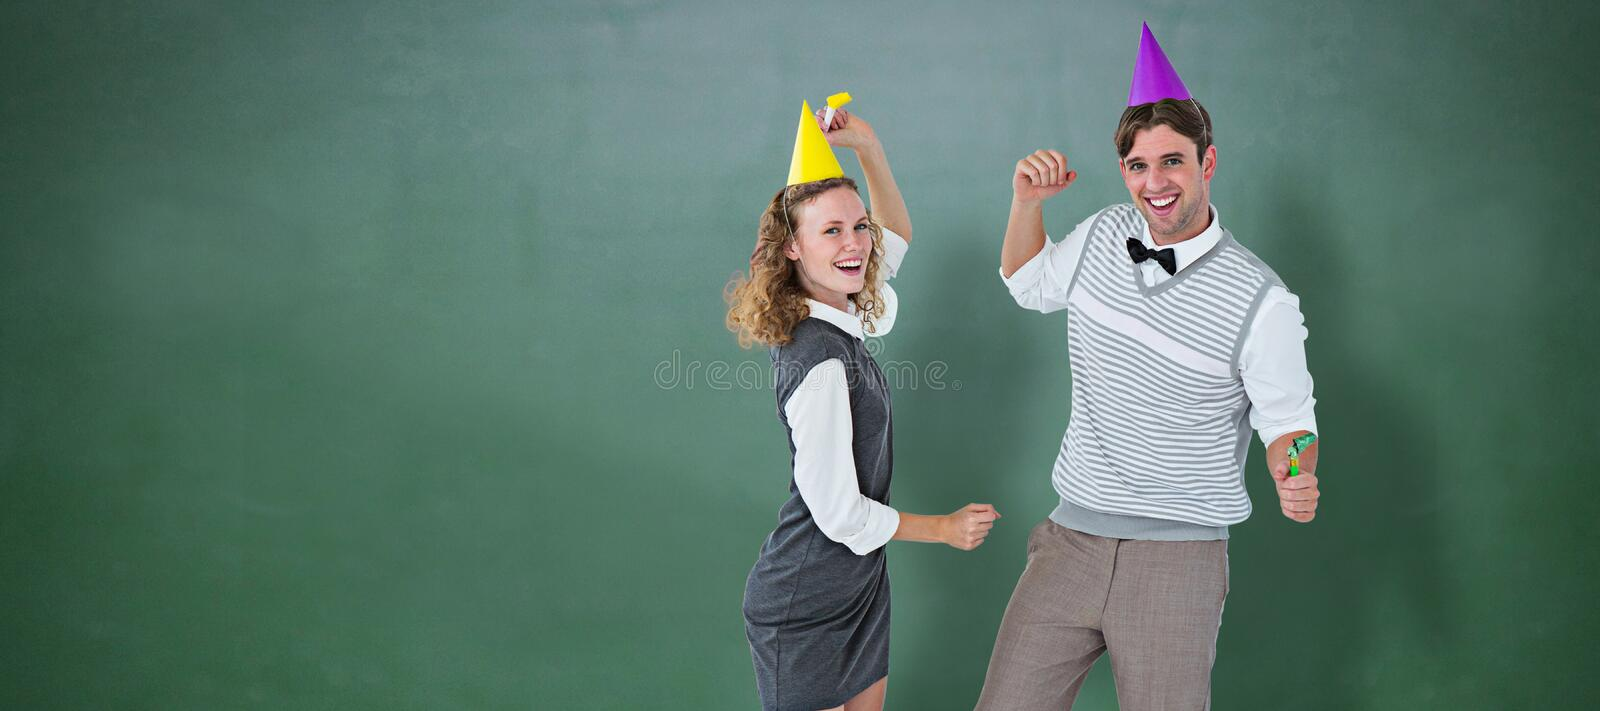 Composite image of geeky couple dancing with party hat. Geeky couple dancing with party hat against green chalkboard stock images